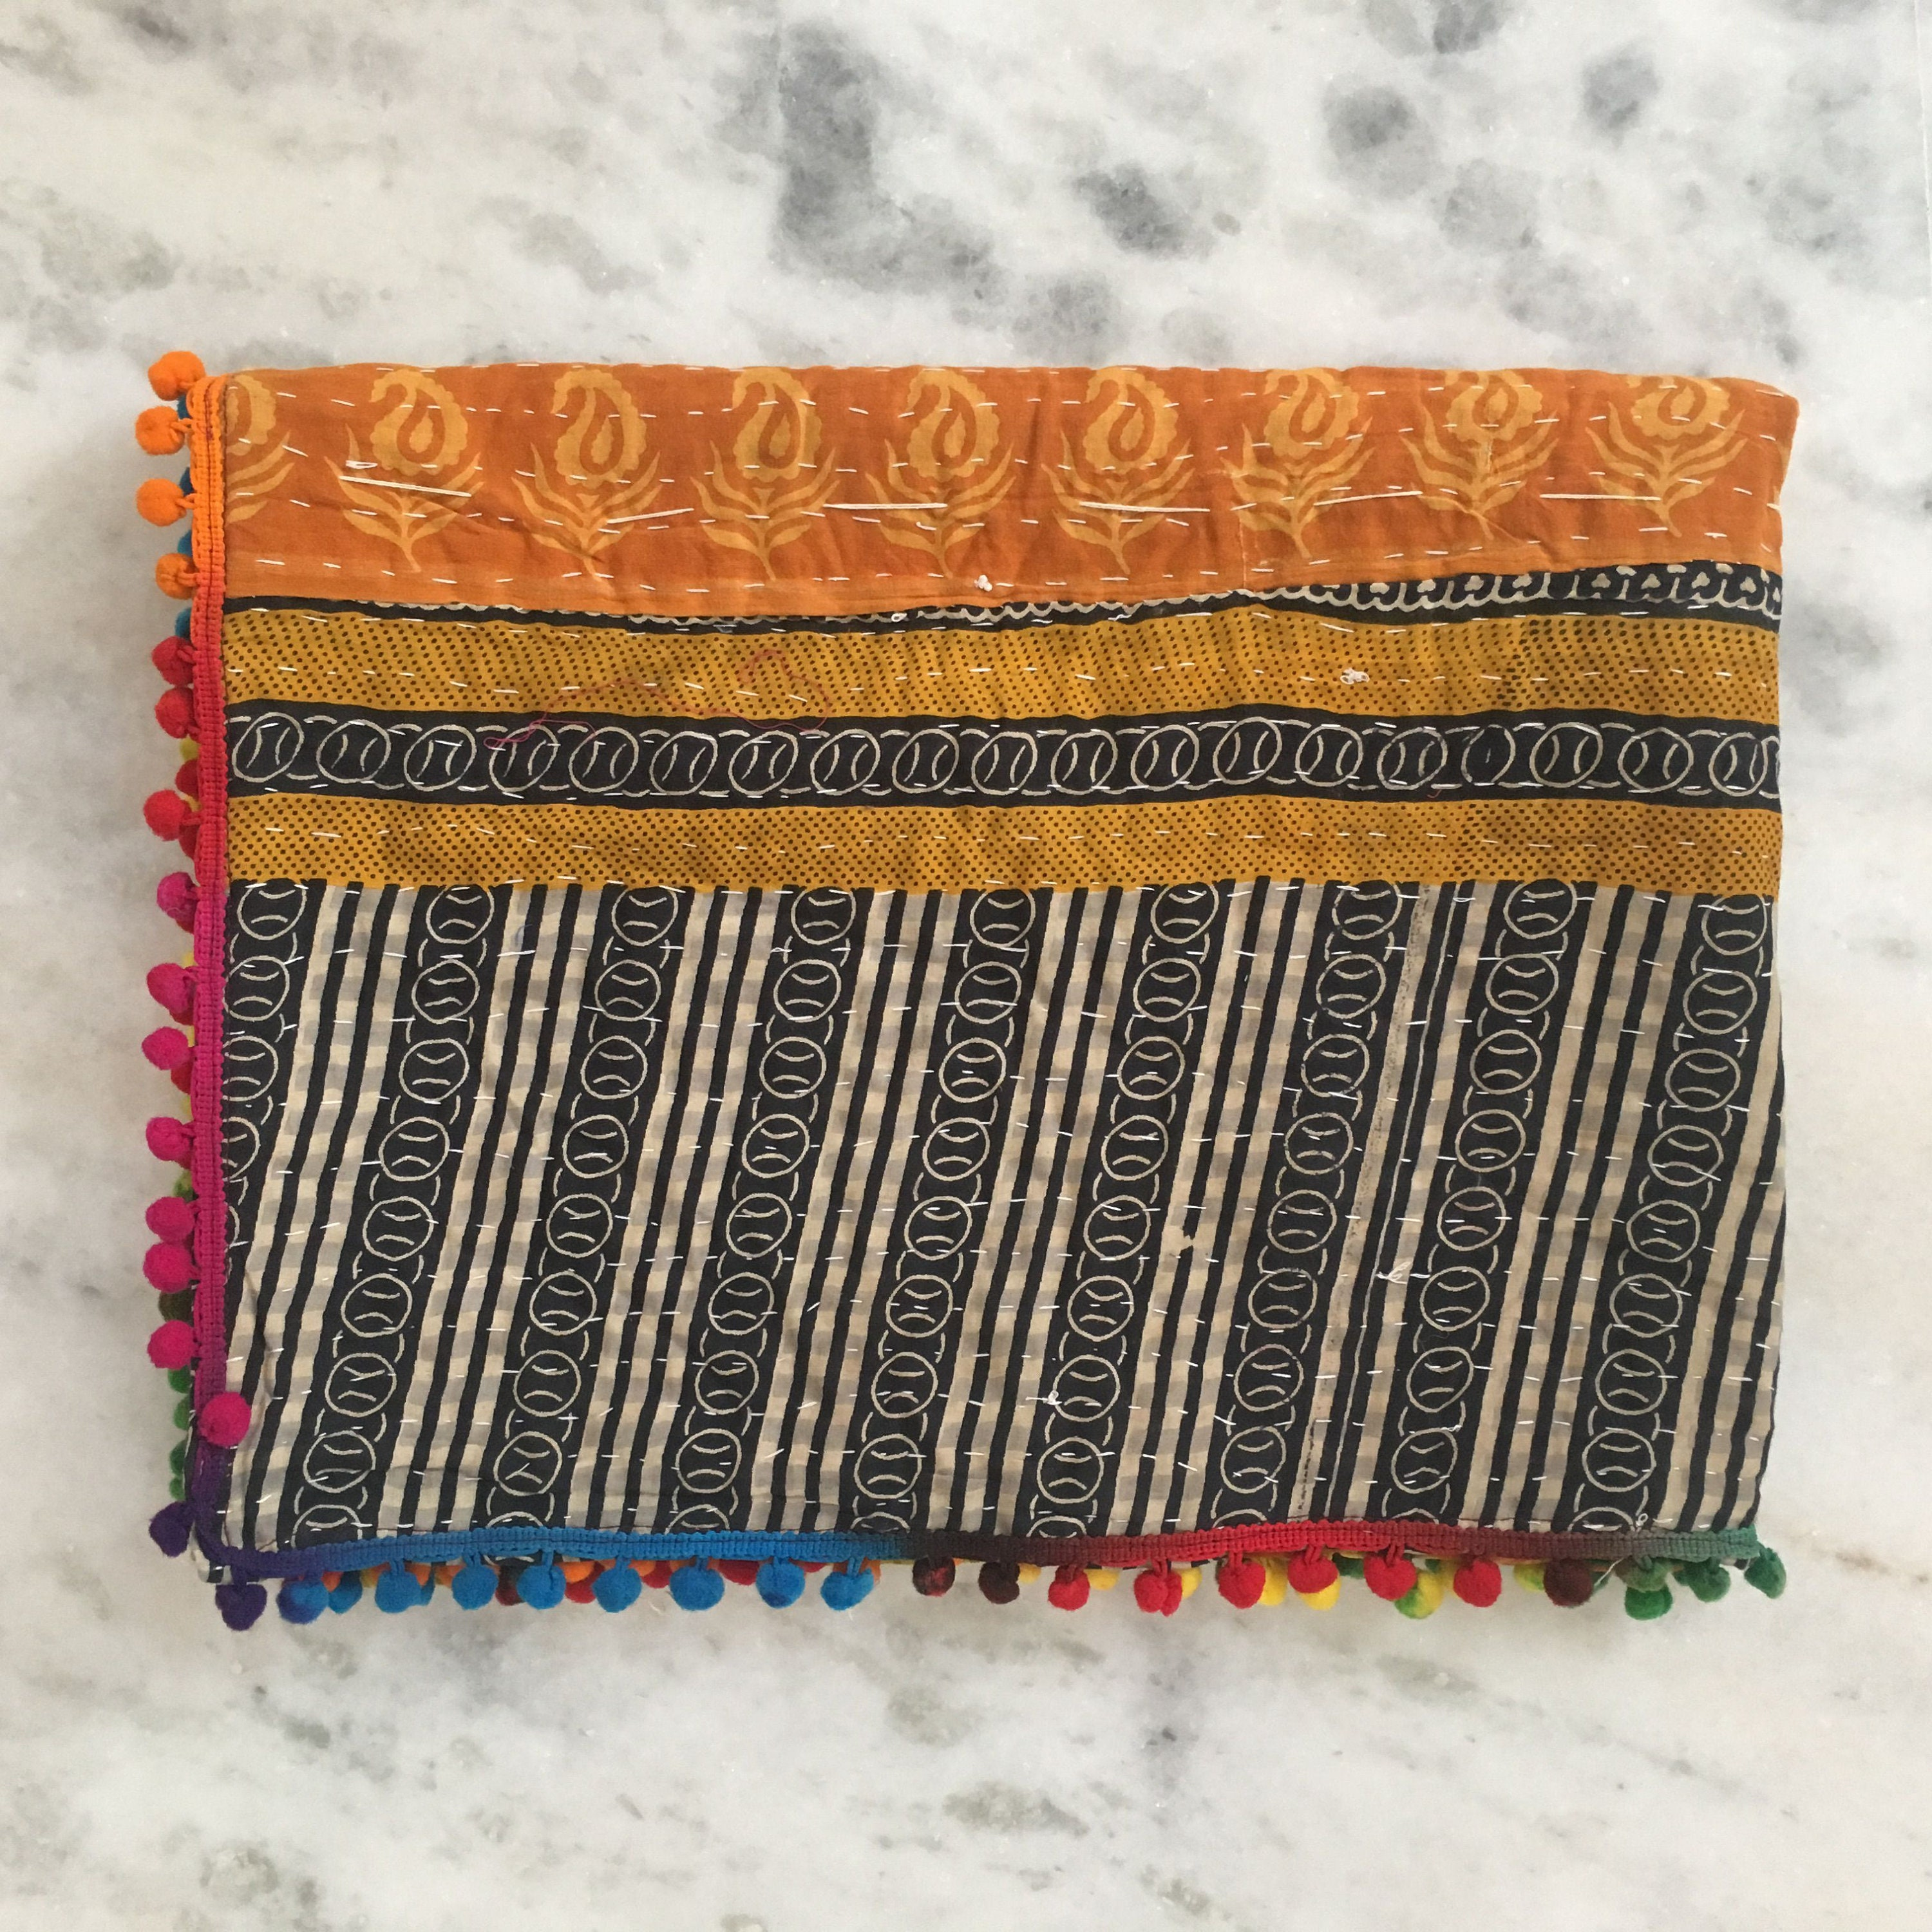 Baby Kantha Quilt Blanket Vintage Throw Handmade Reversible Recycled Cotton Saris Floral Homemade Baby Bedding Indian Pom Pom Quilt